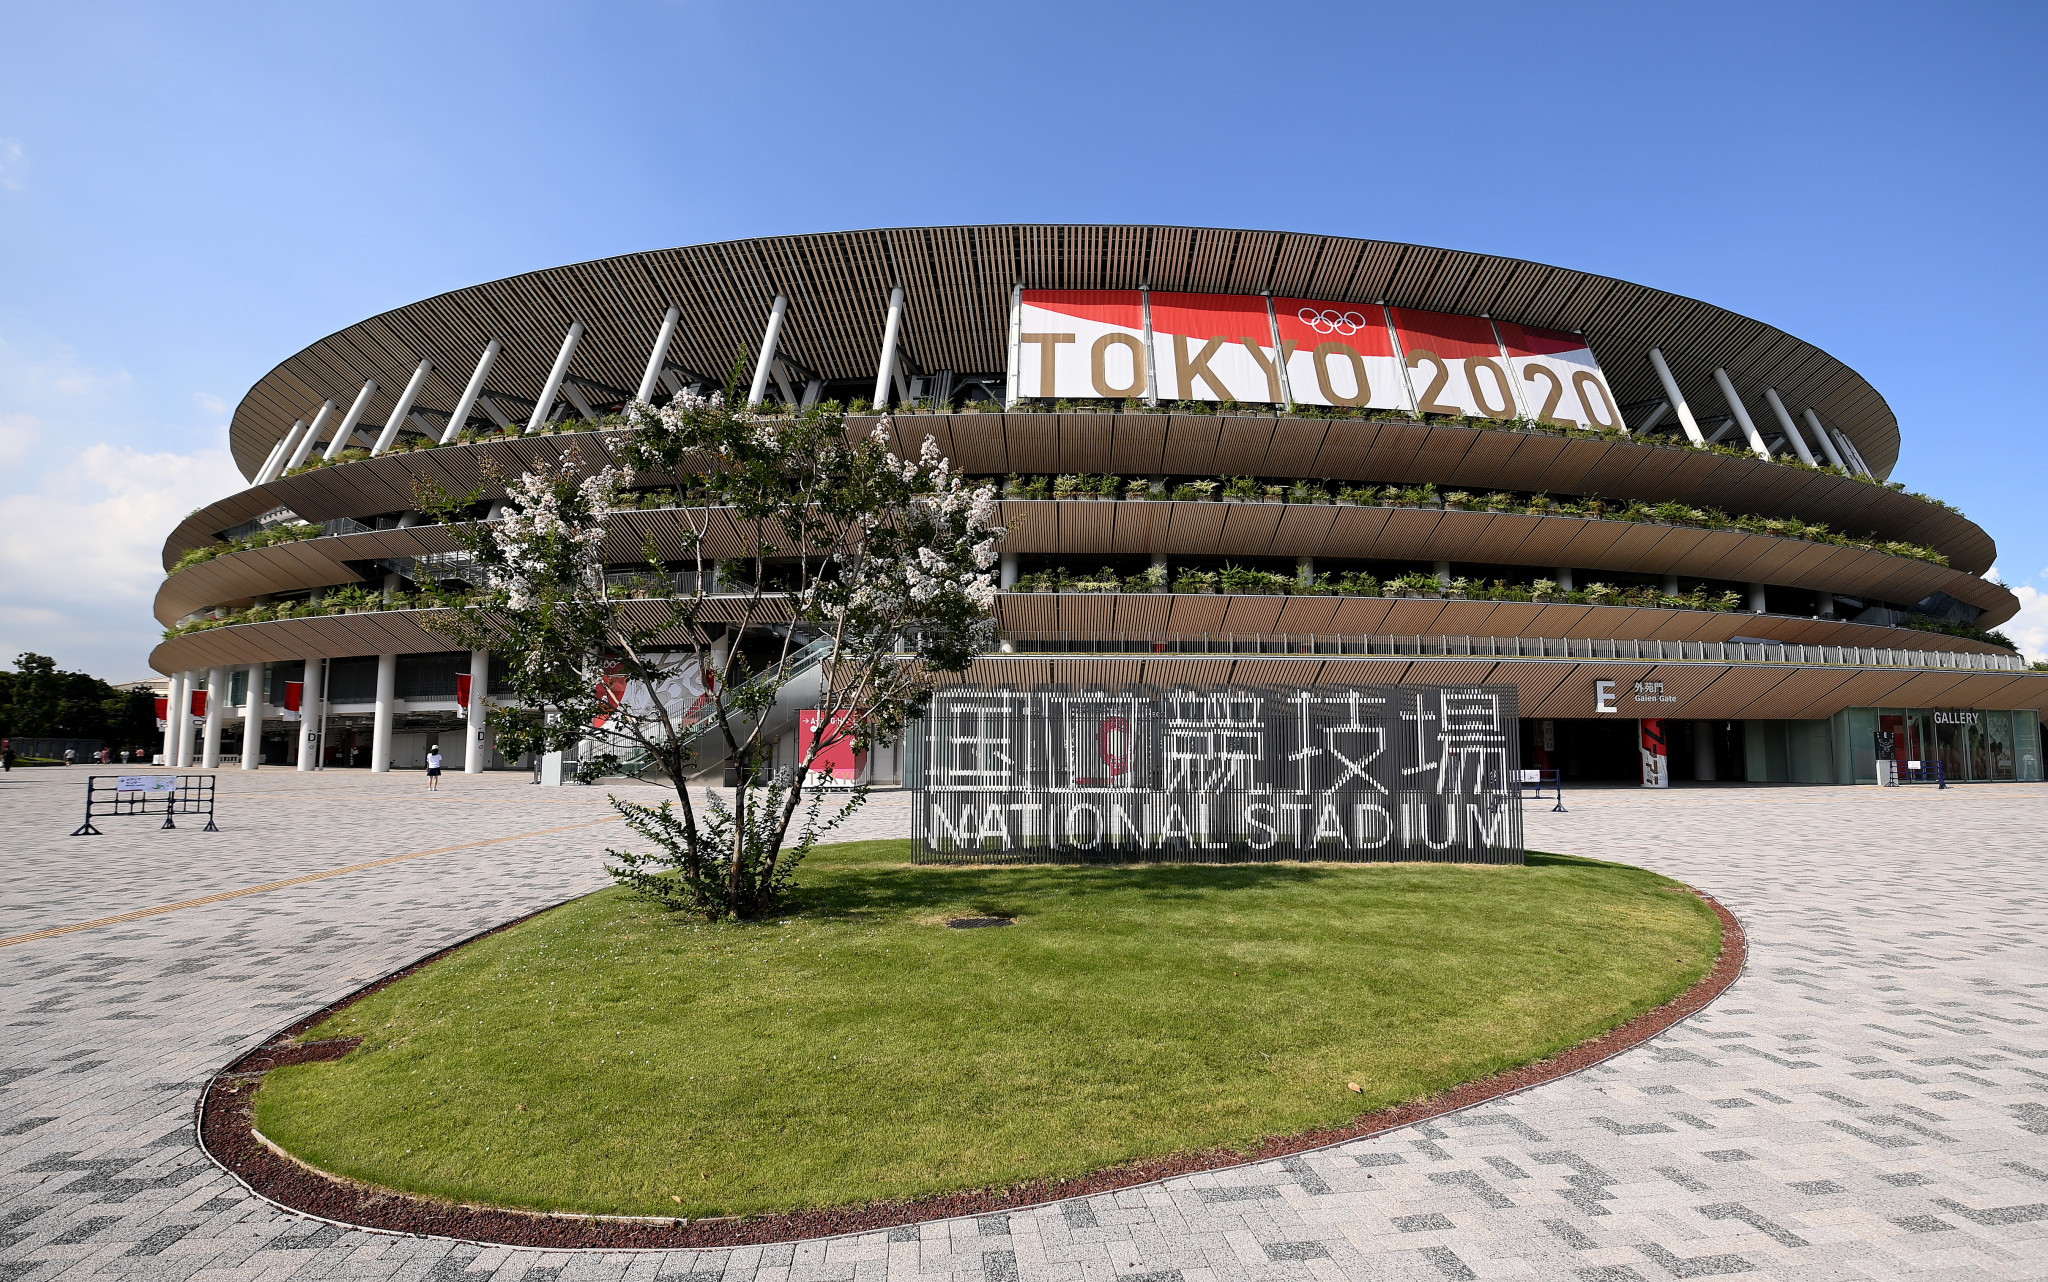 Tokyo 2020 confirms hospitalisations due to COVID five times more than previously reported